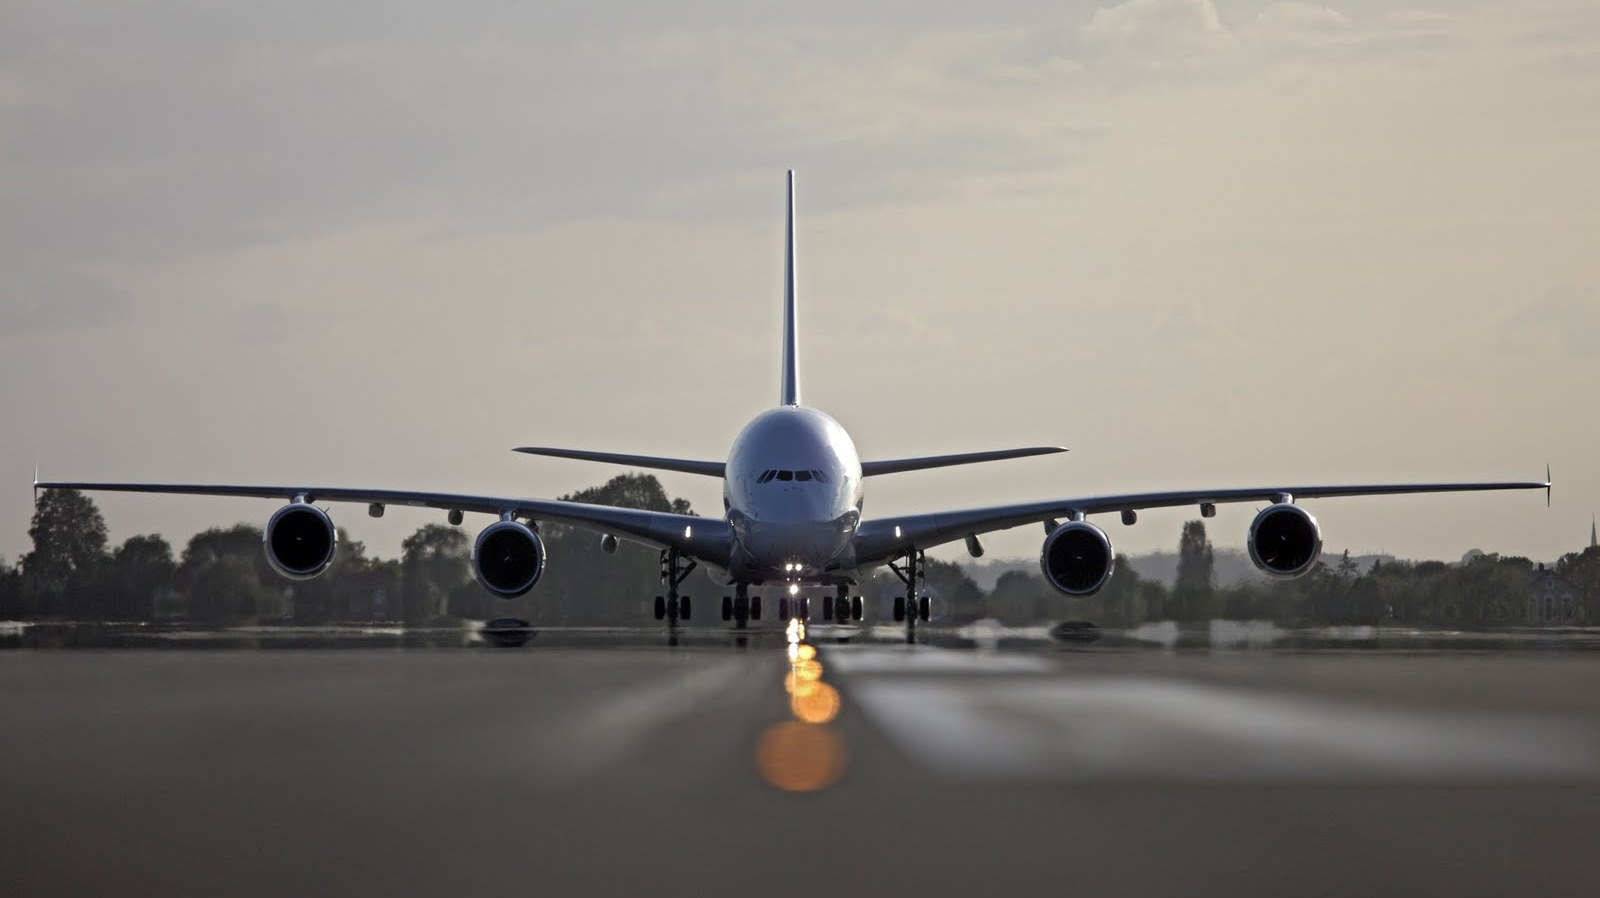 http://3.bp.blogspot.com/_ja676MG45Zg/S_VwVUceynI/AAAAAAAADW4/NWk9dRcqLmI/s1600/air-france-airbus-a380-on-runway.JPG